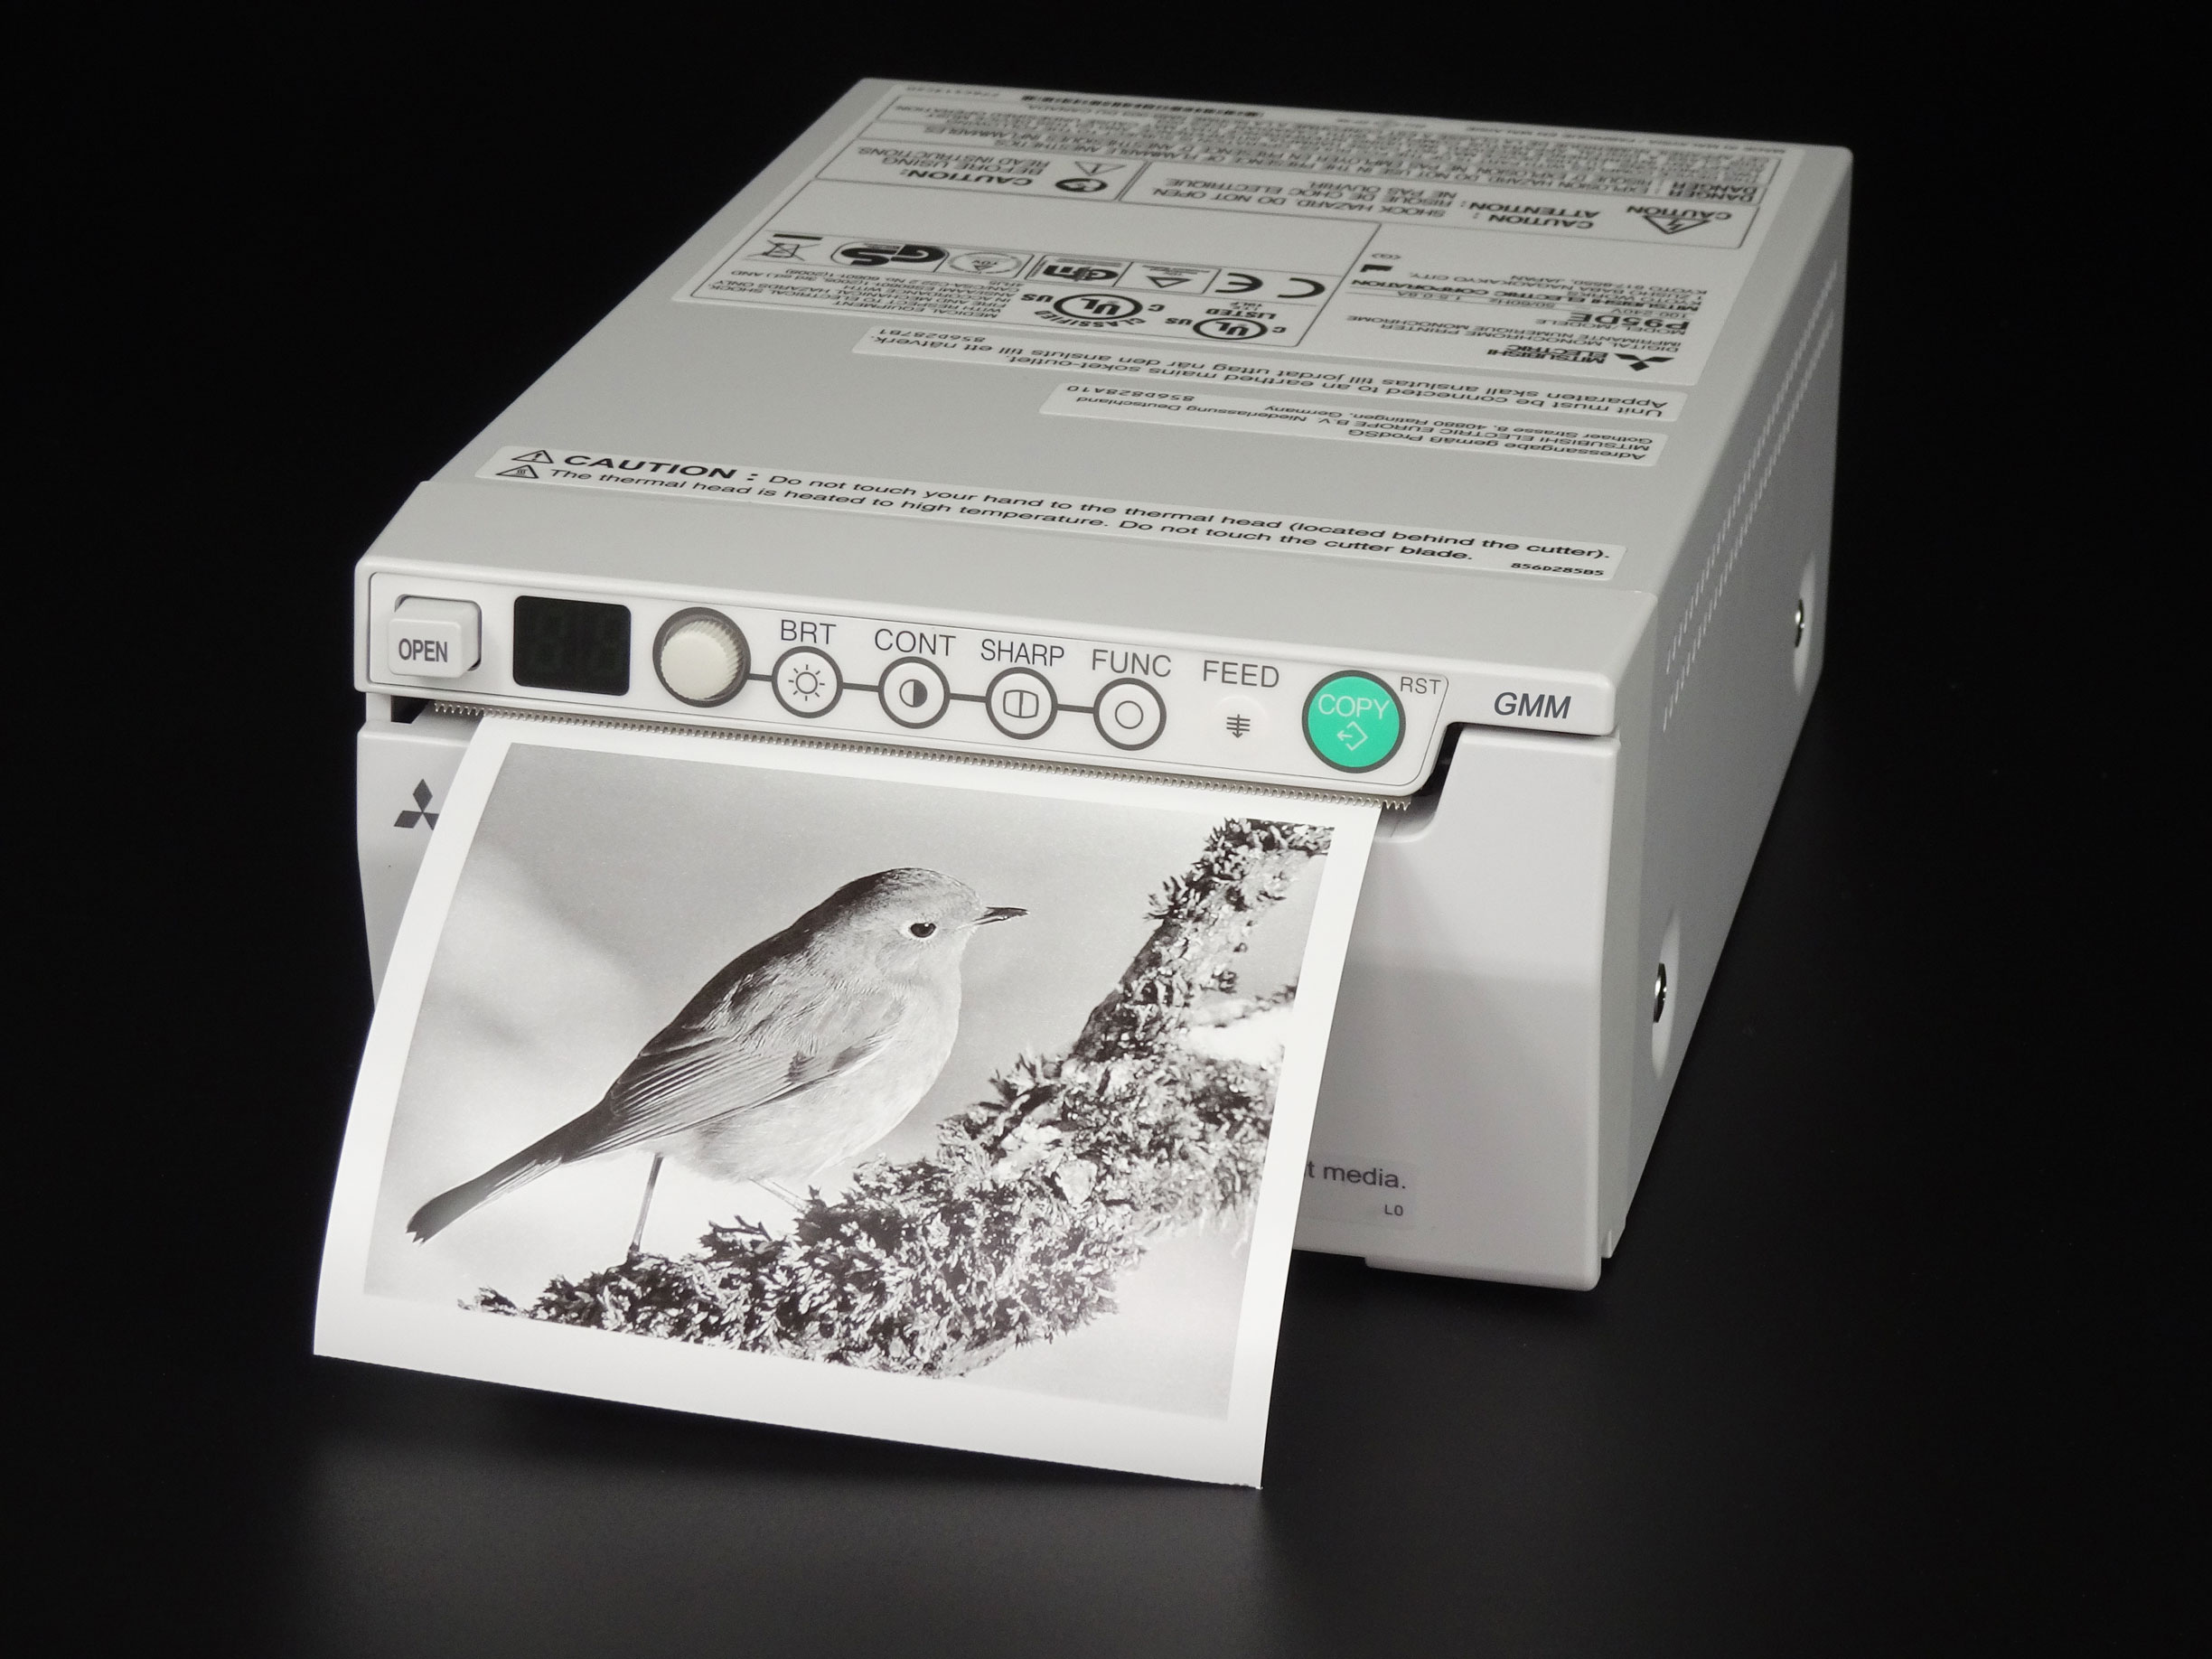 Mitsubishi Digital Monochrome Printer P95DE